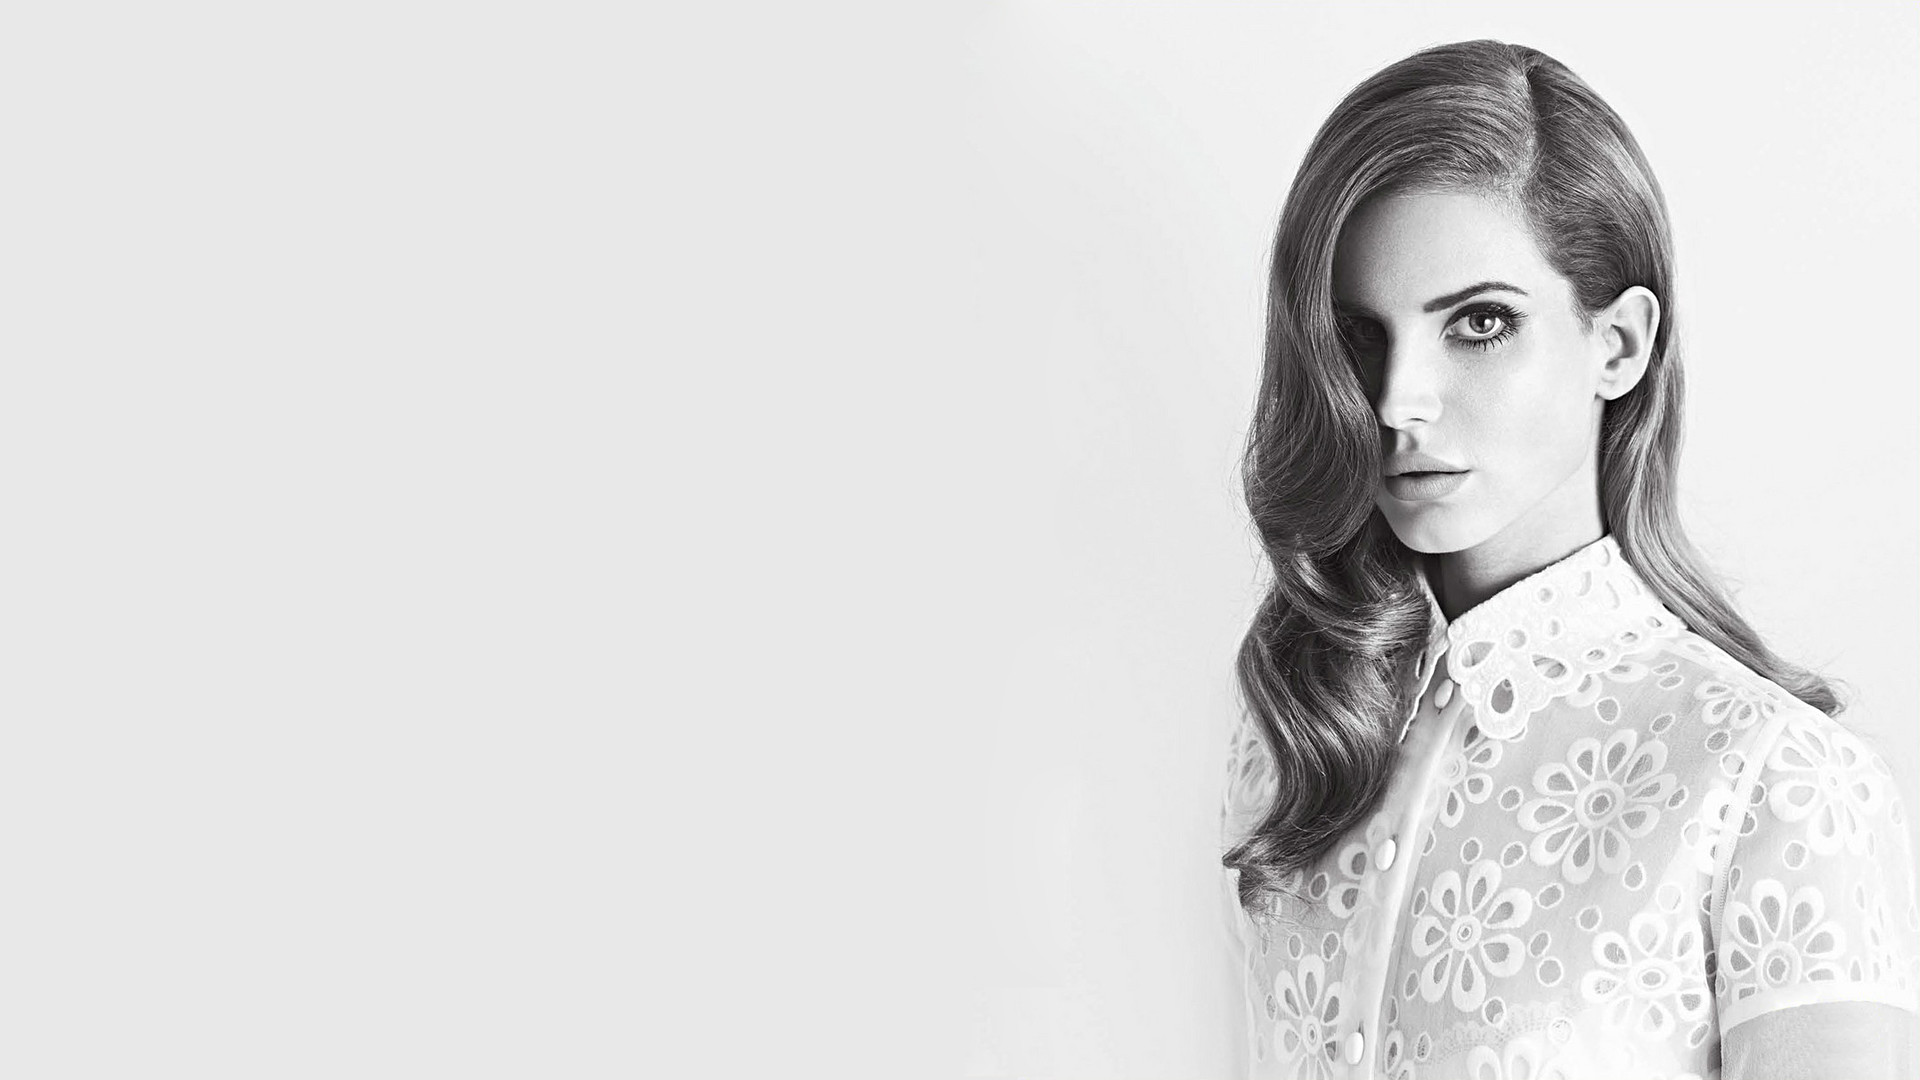 1920x1080 Lana Del Rey Wallpaper